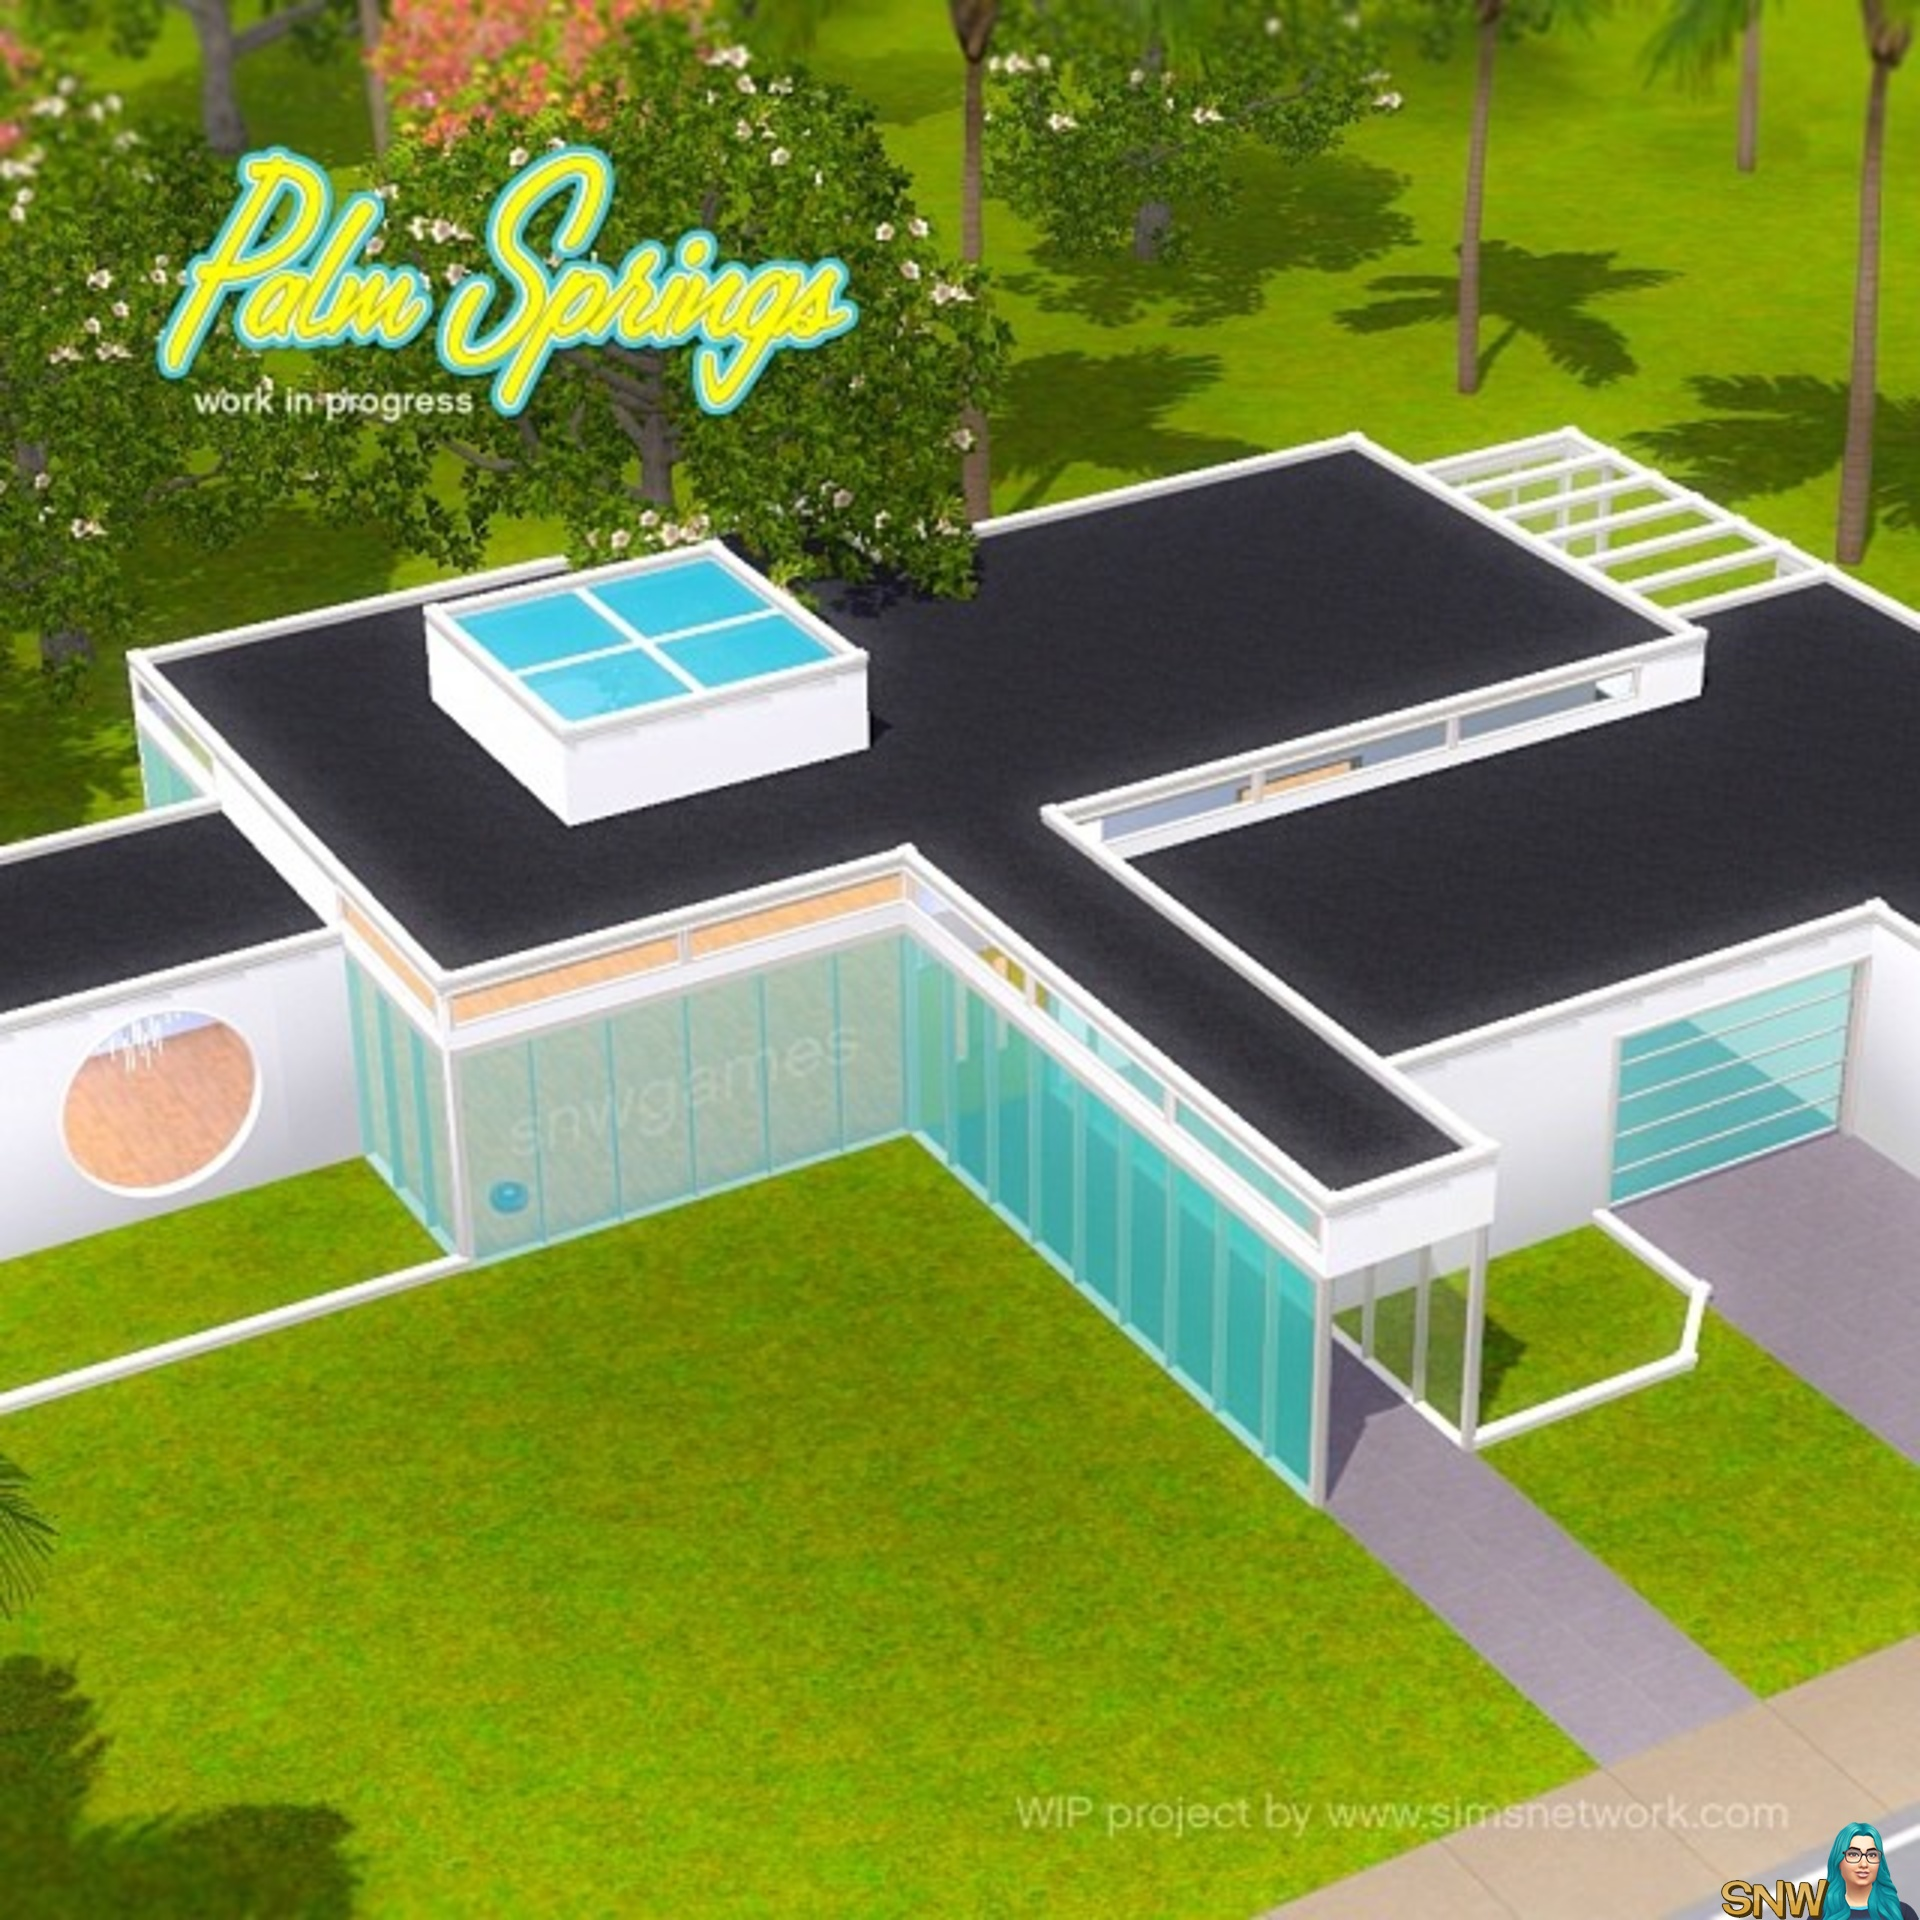 Specials mid century modern house in the sims 4